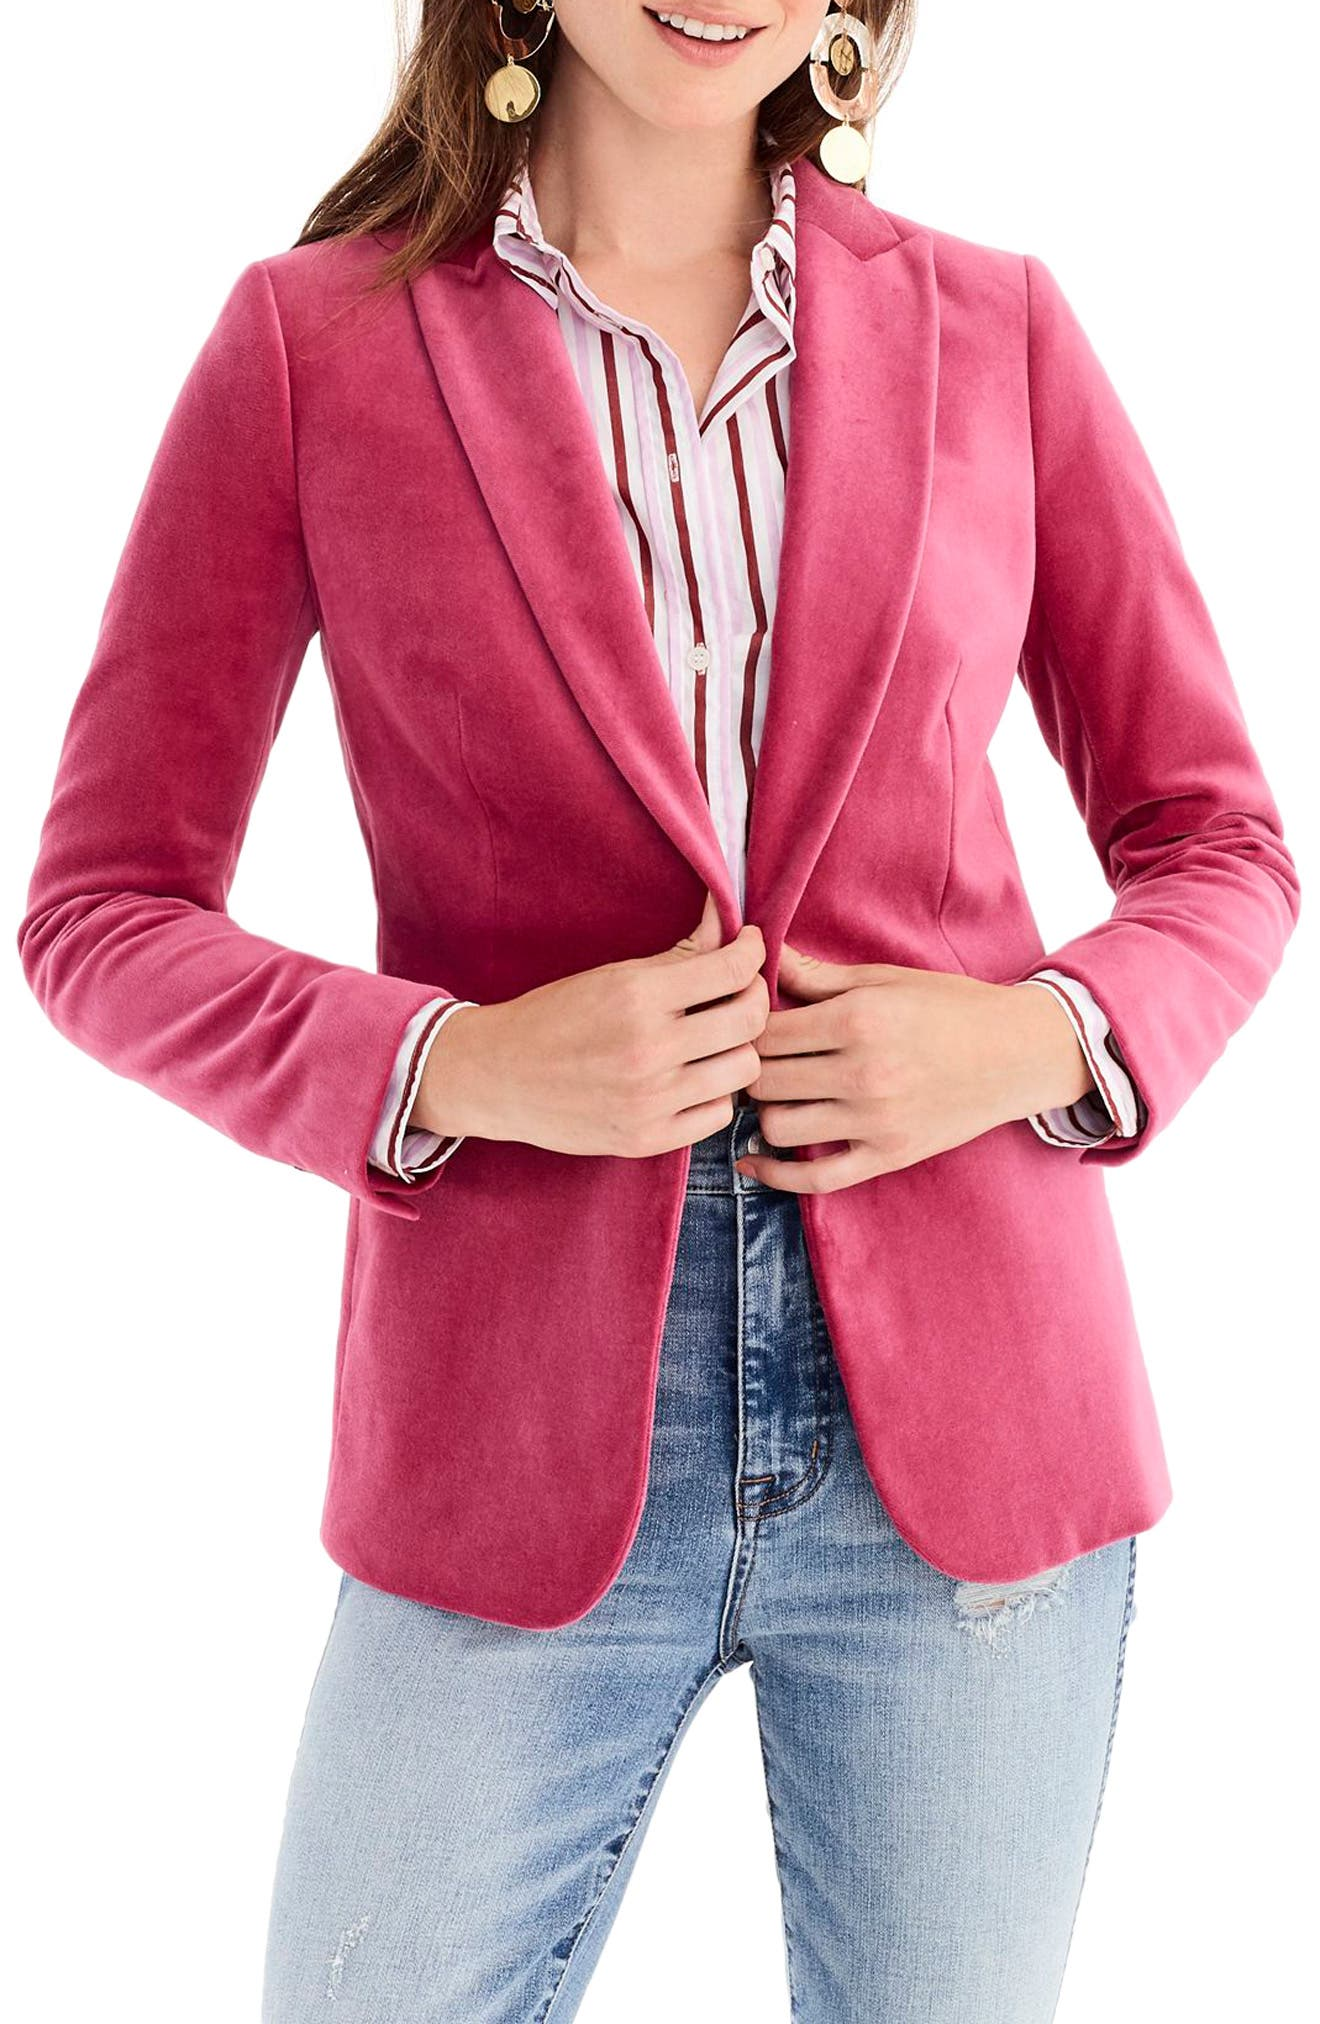 Parke Velvet Blazer,                             Main thumbnail 1, color,                             DRIED ROSE